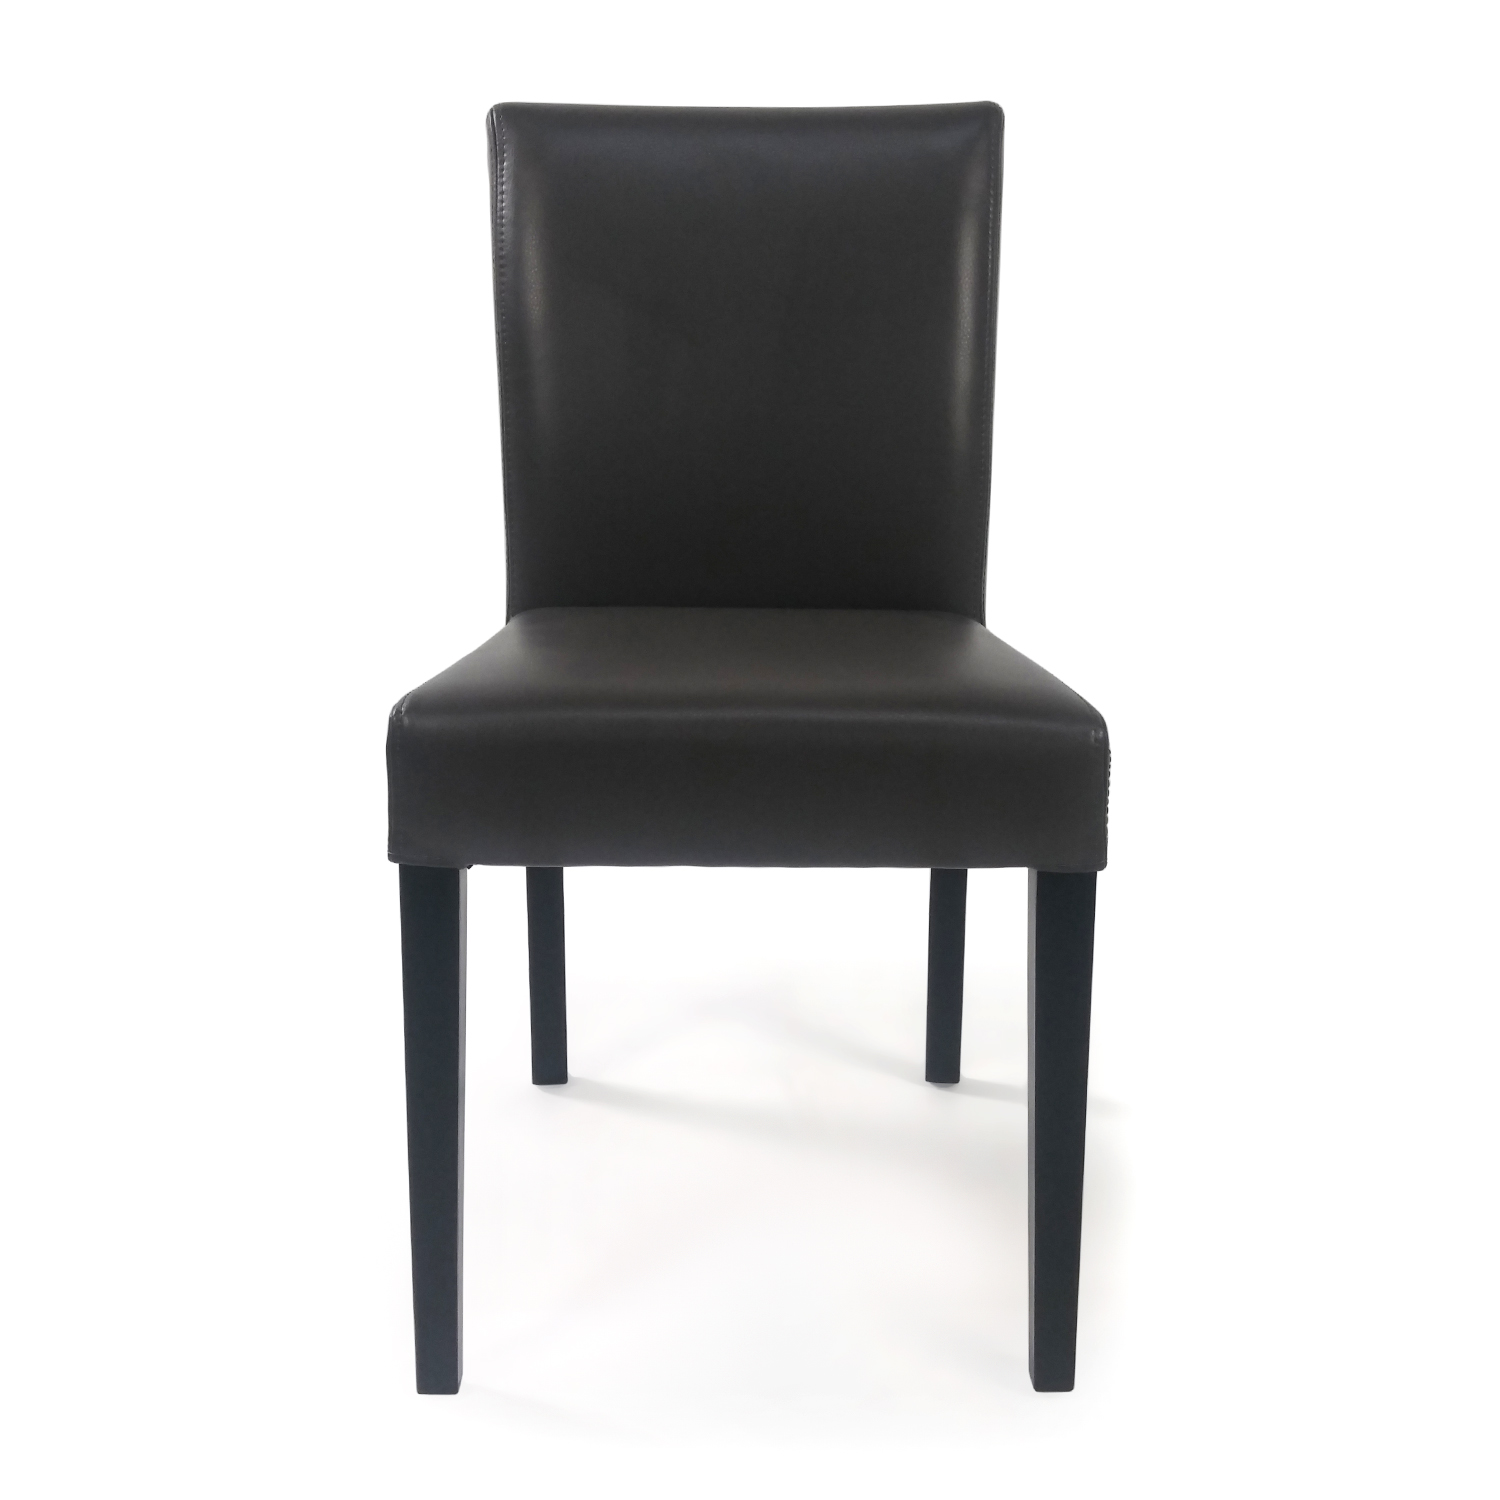 CB2 CB2 Leather Side Chair dimensions